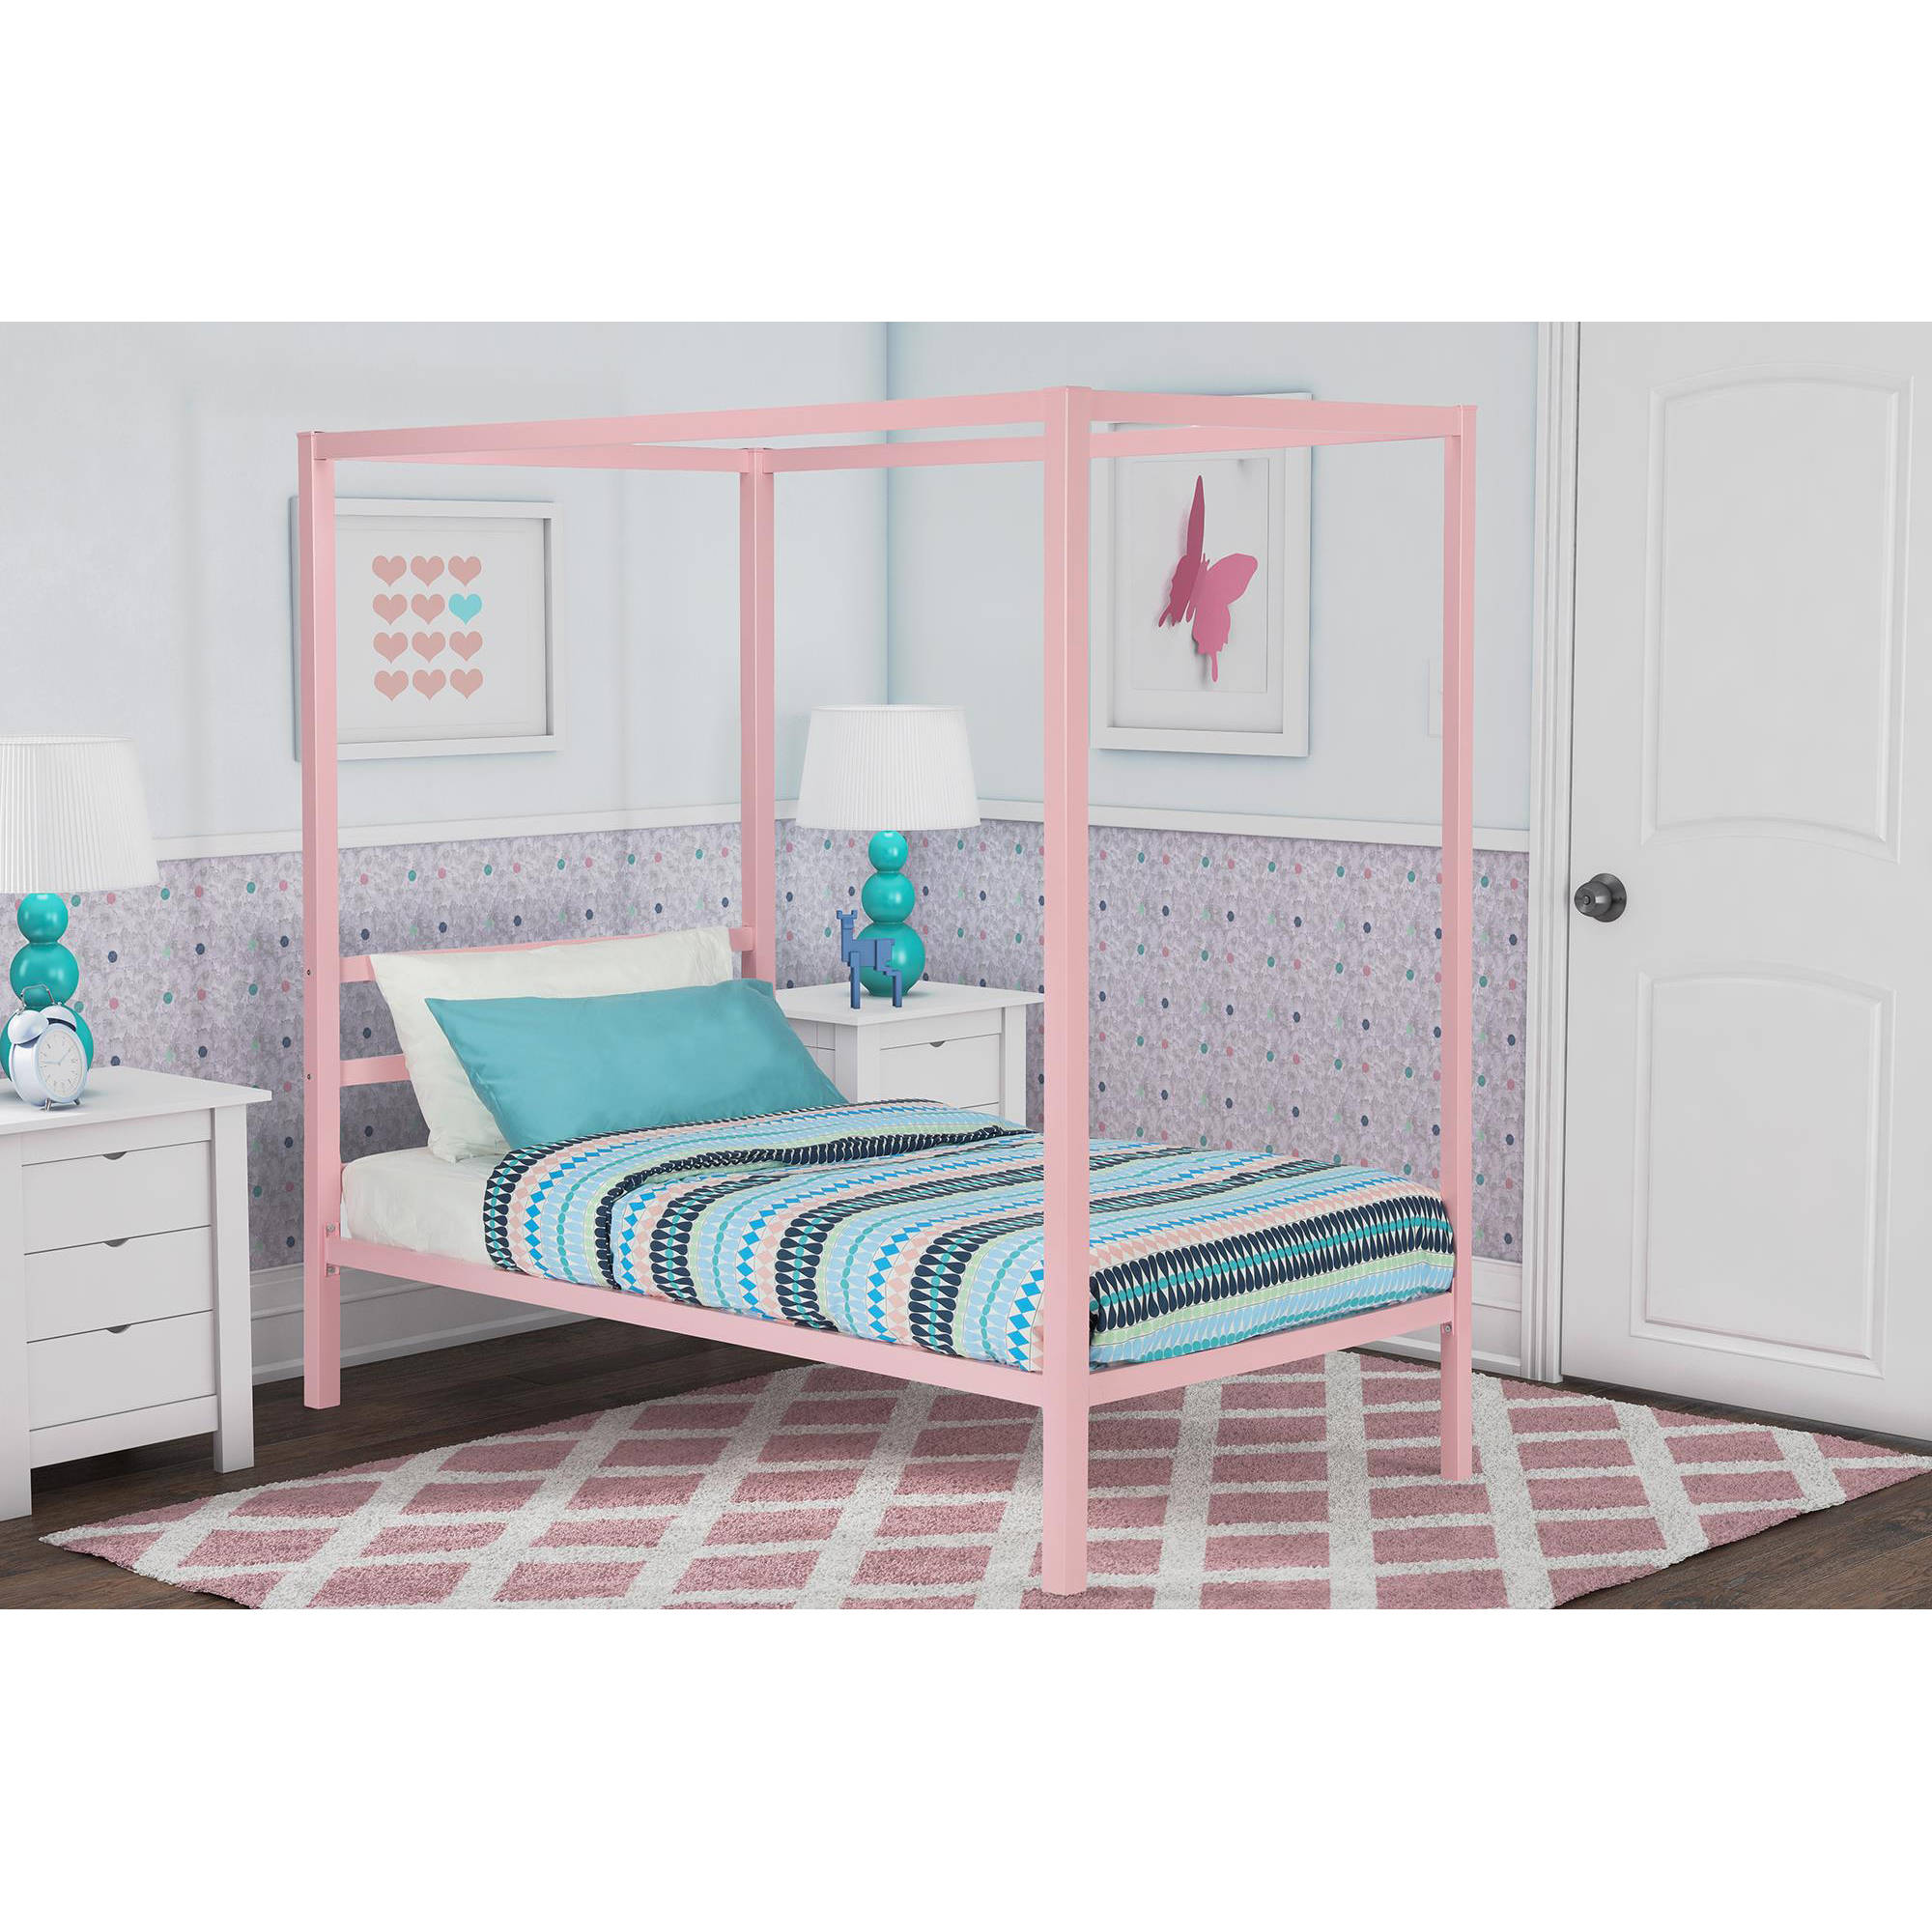 DHP Modern Metal Canopy Bed Multiple Colors and Sizes  sc 1 st  Walmart & DHP Modern Metal Canopy Bed Multiple Colors and Sizes - Walmart.com